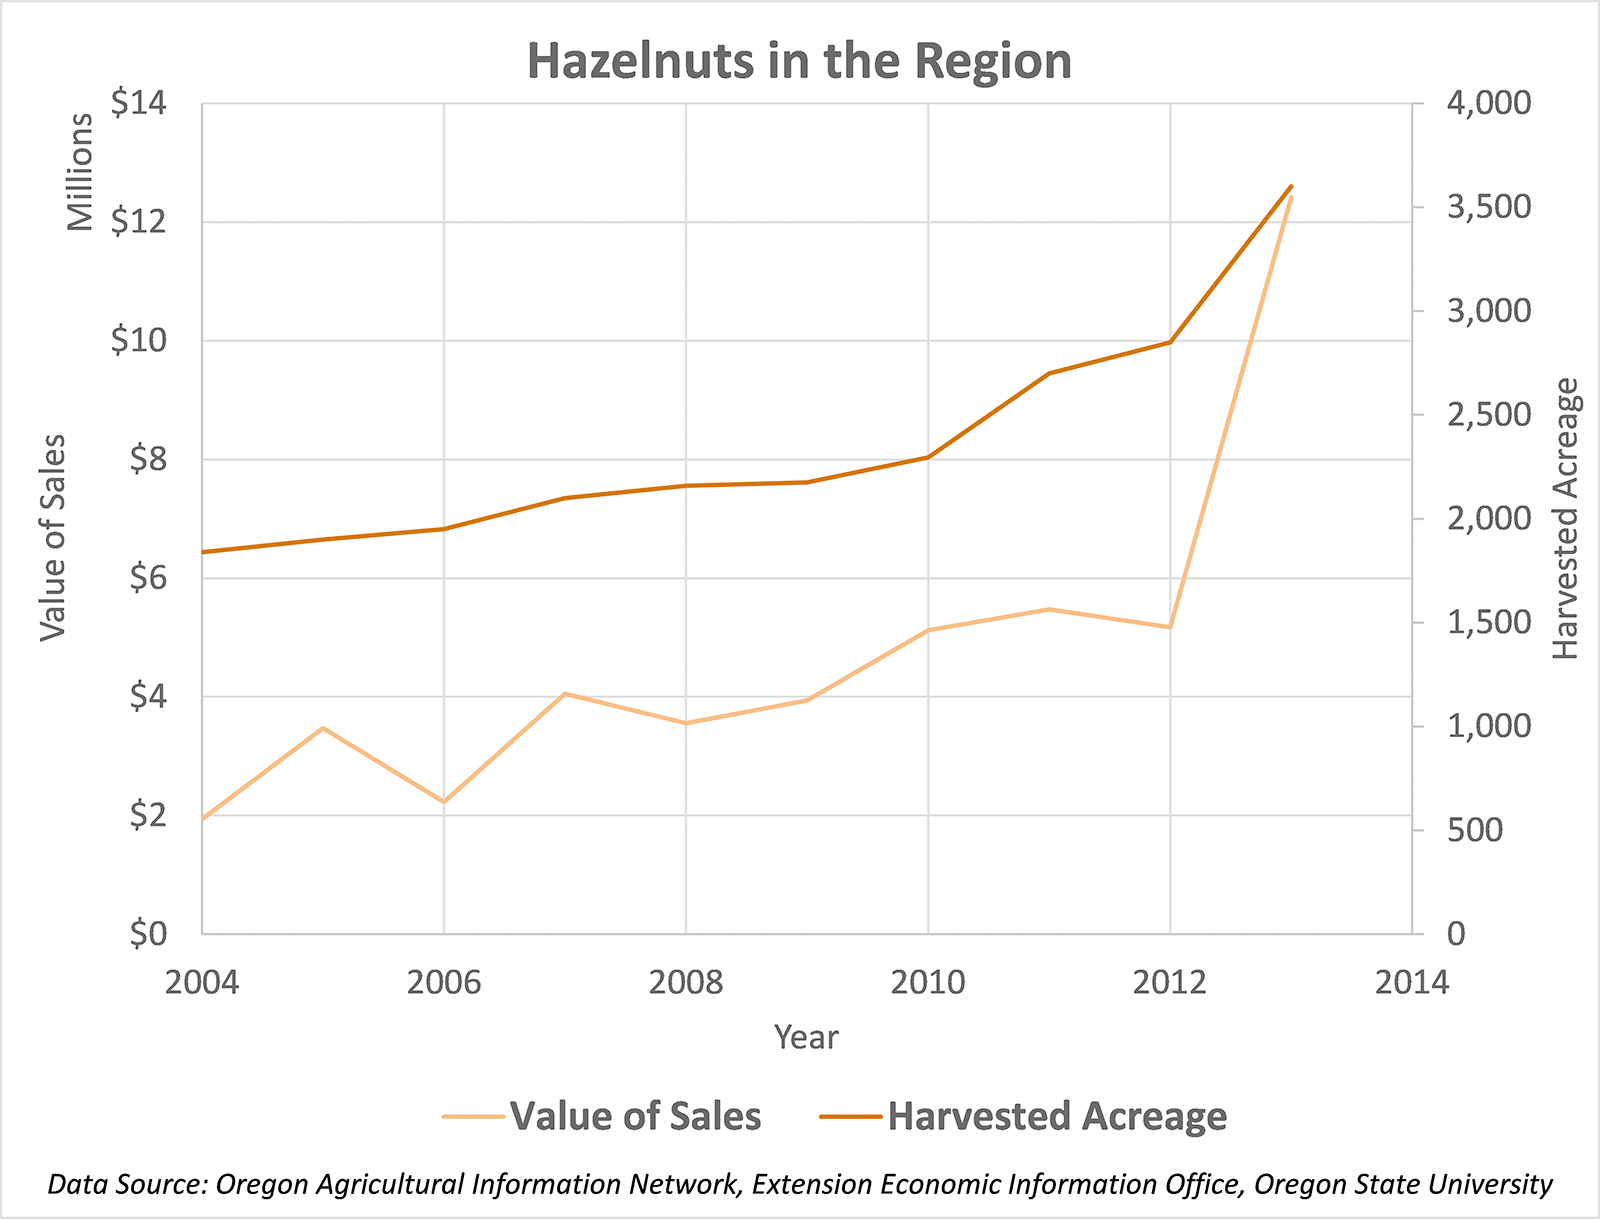 Hazelnuts in the Region